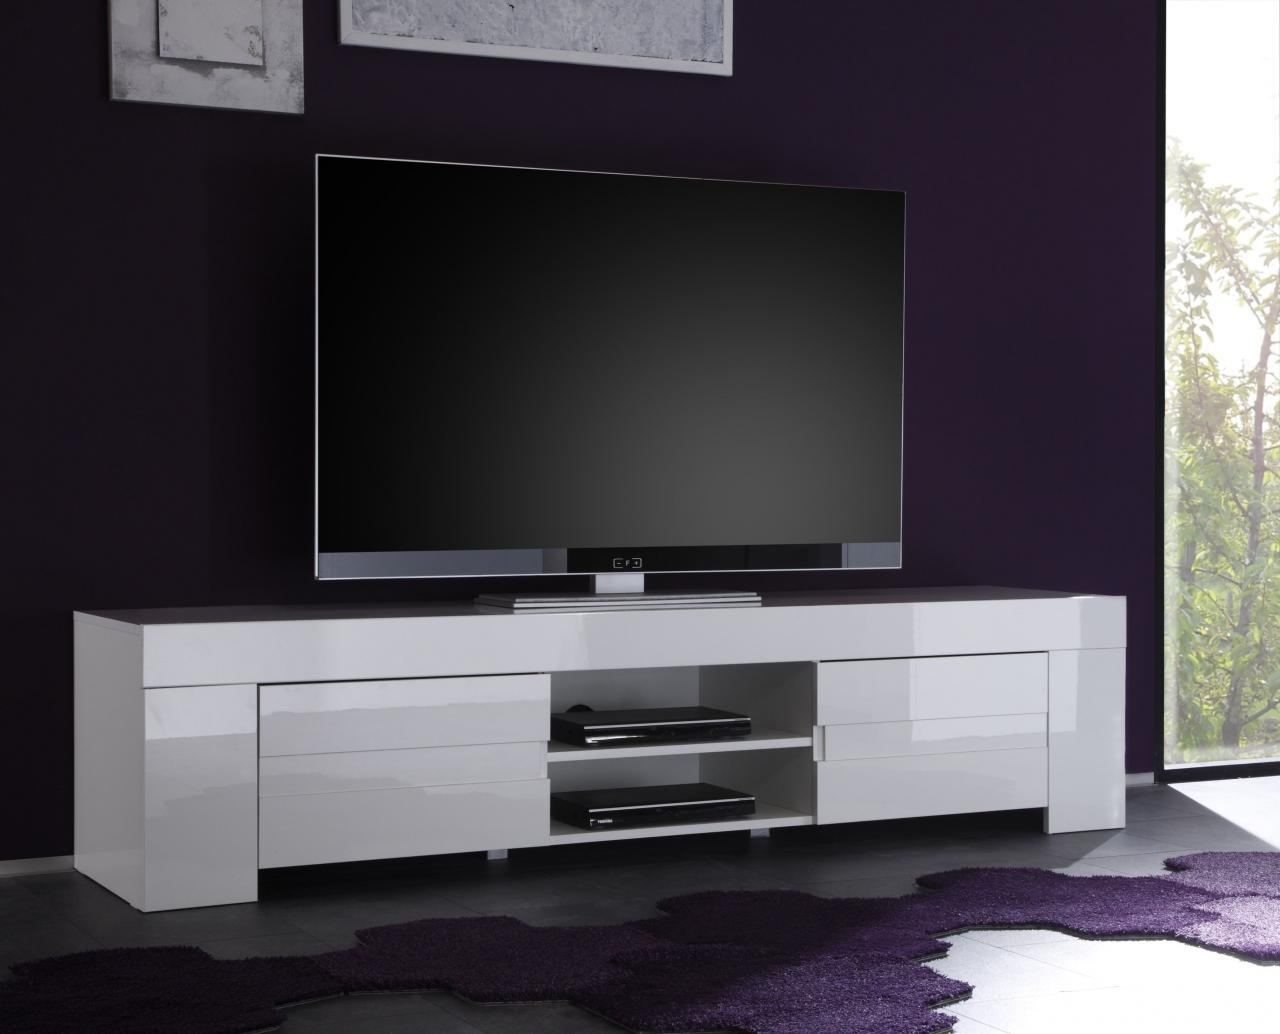 Meuble Tv Blanc Laqu 160 Cm Firstcdiscount # Meuble Suspendu Tv